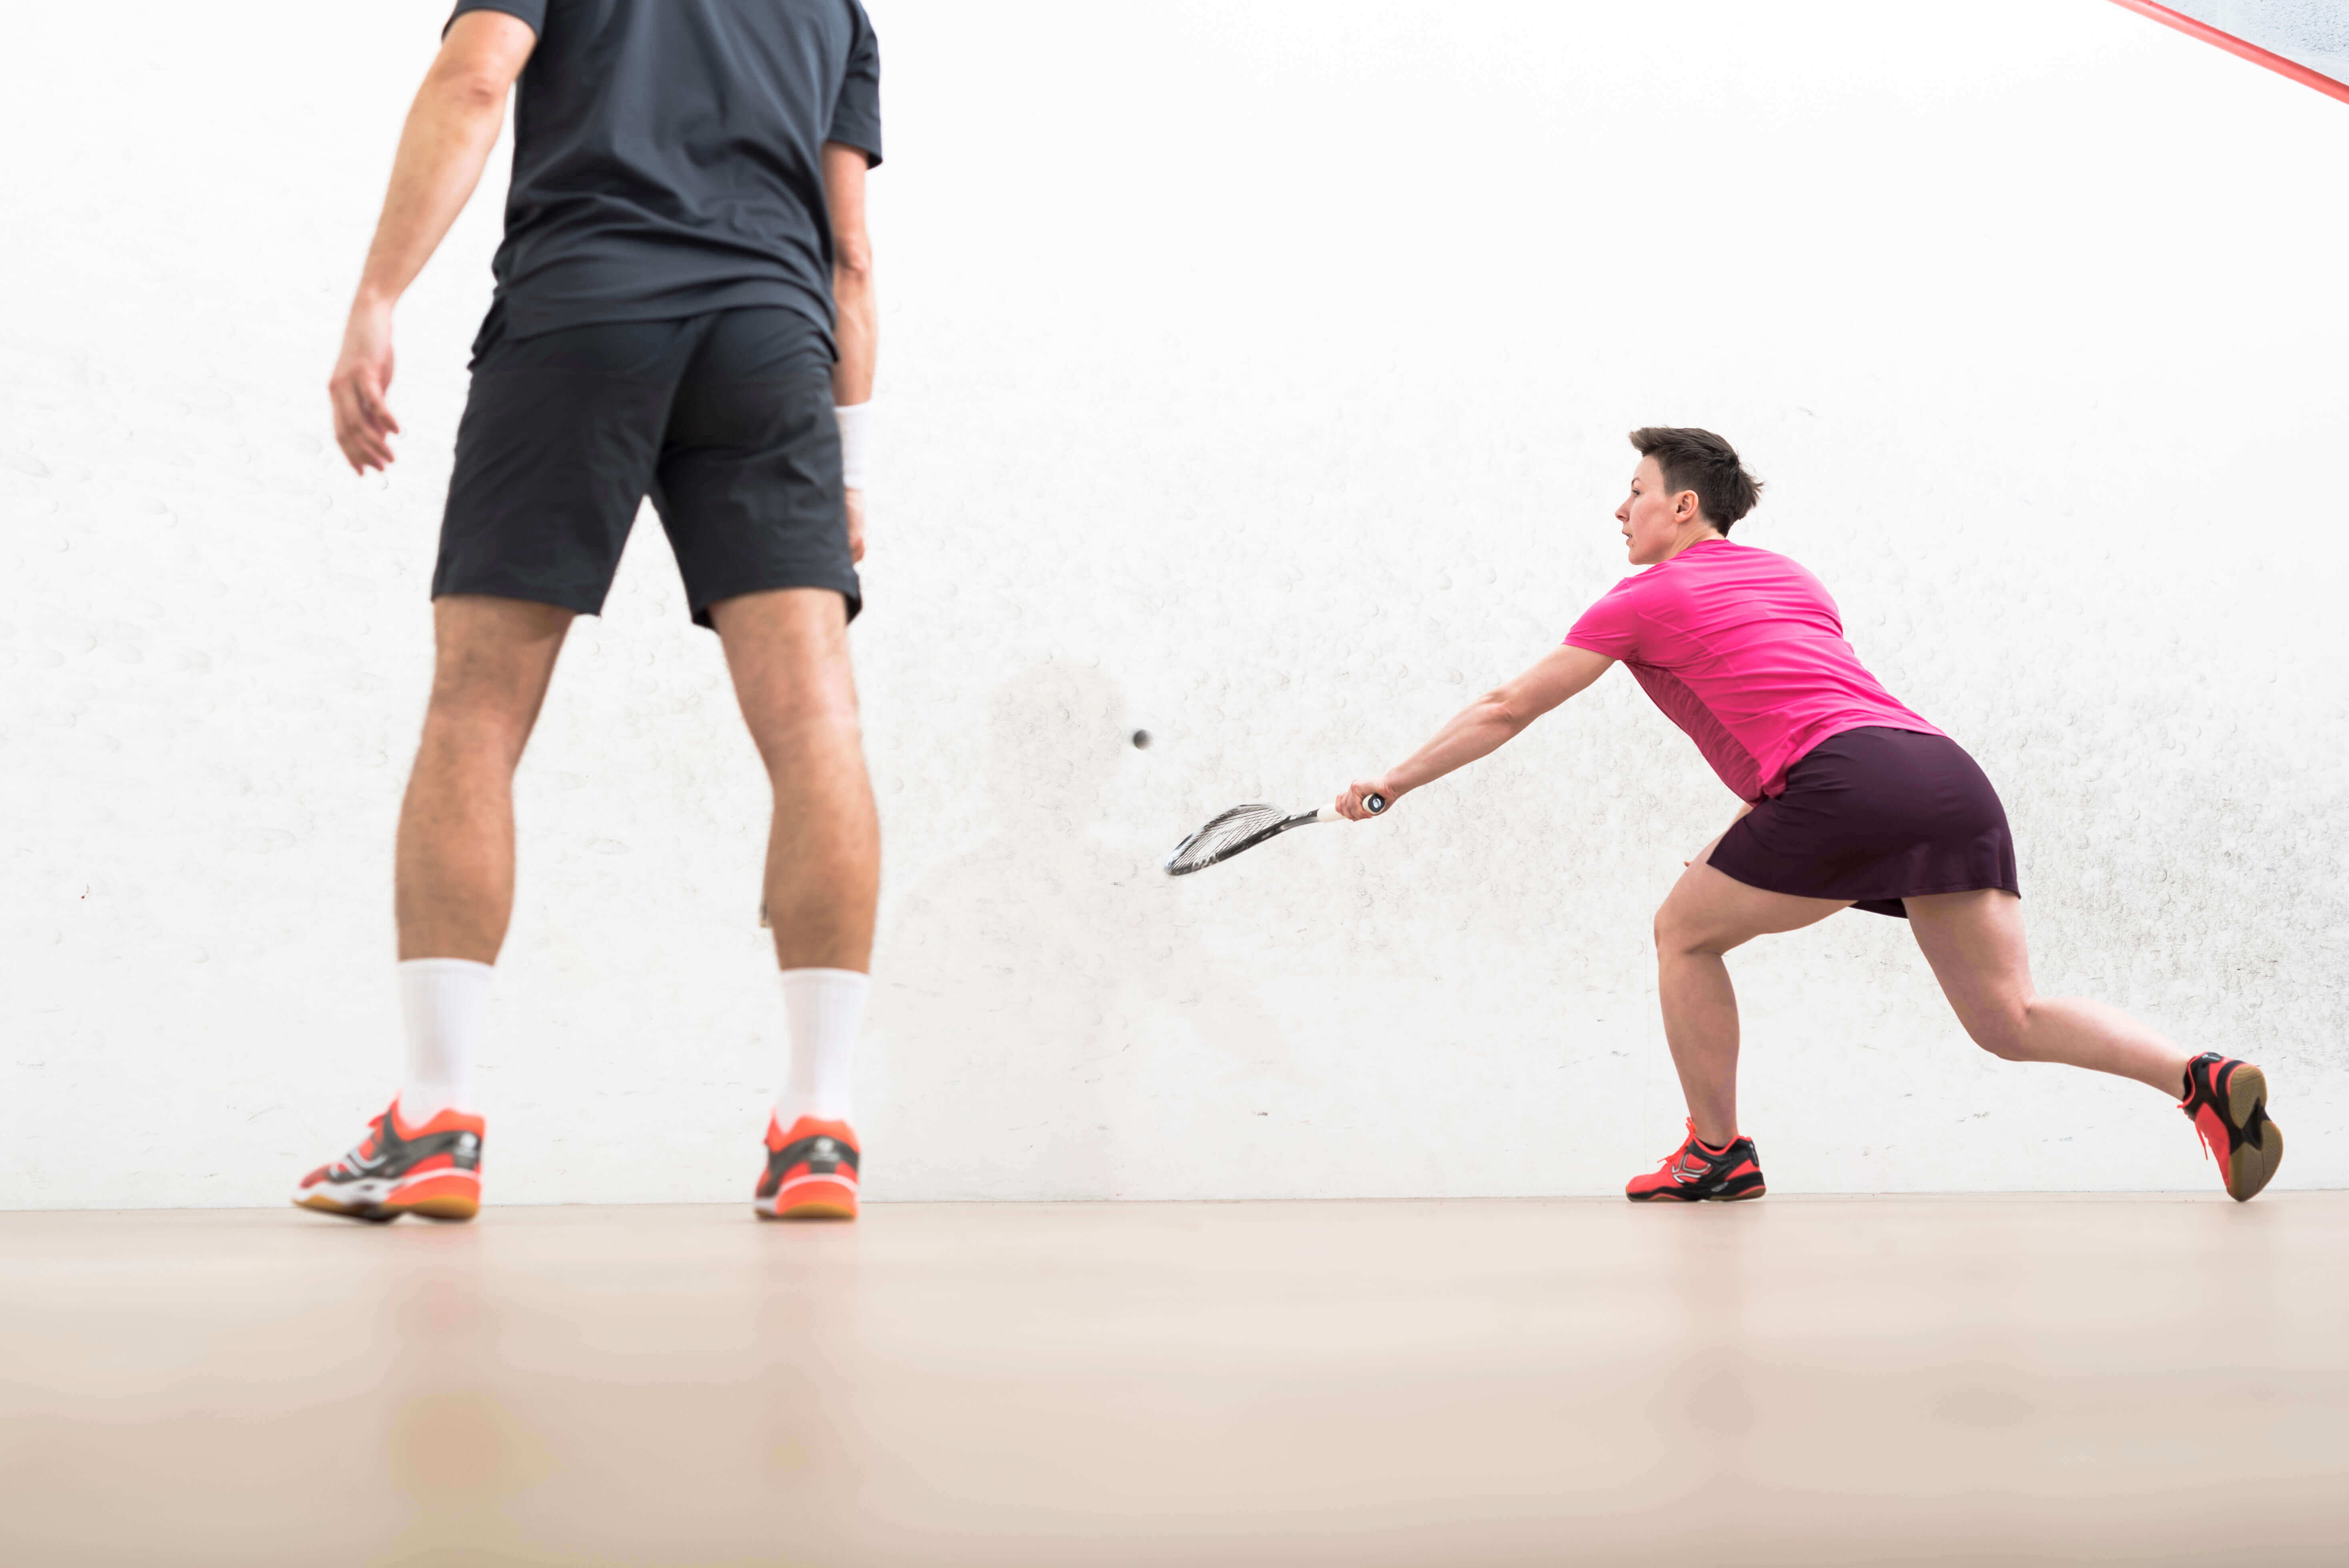 Discover Squash: A Sport For Total Well-Being